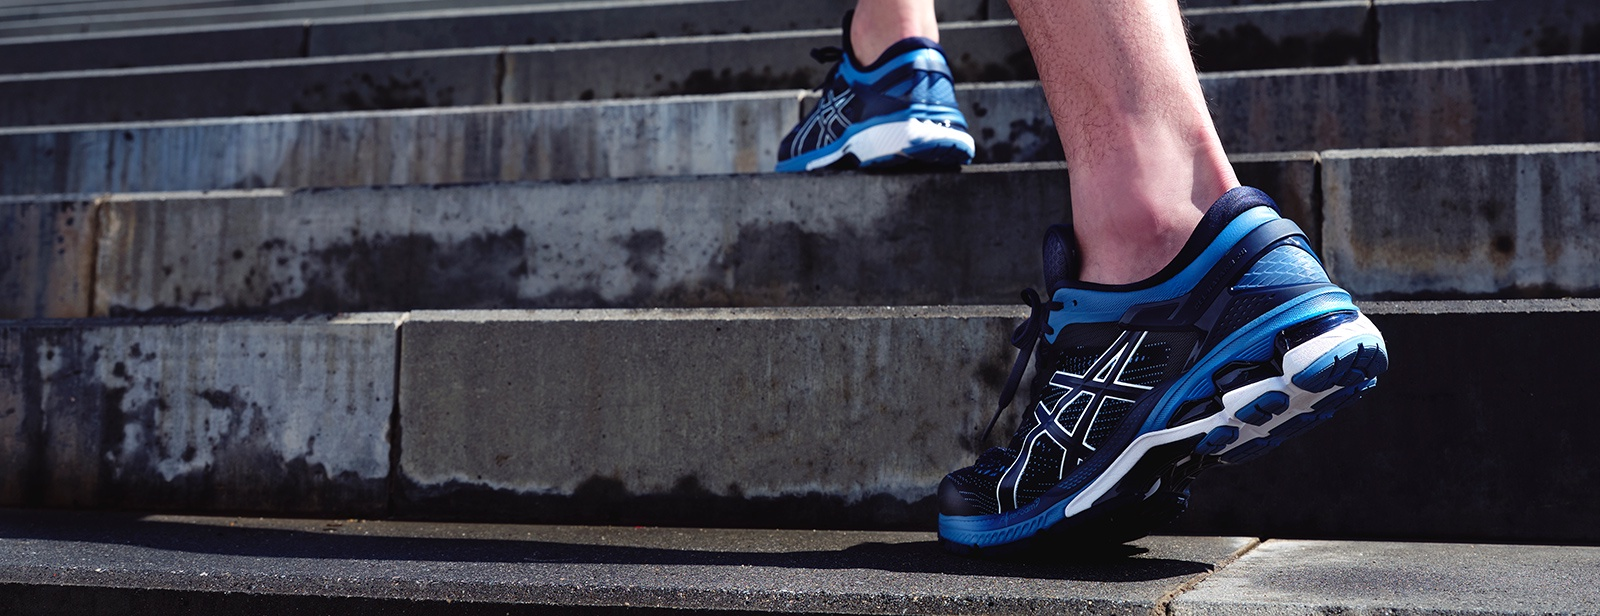 GEL-Kayano 26 Shoes